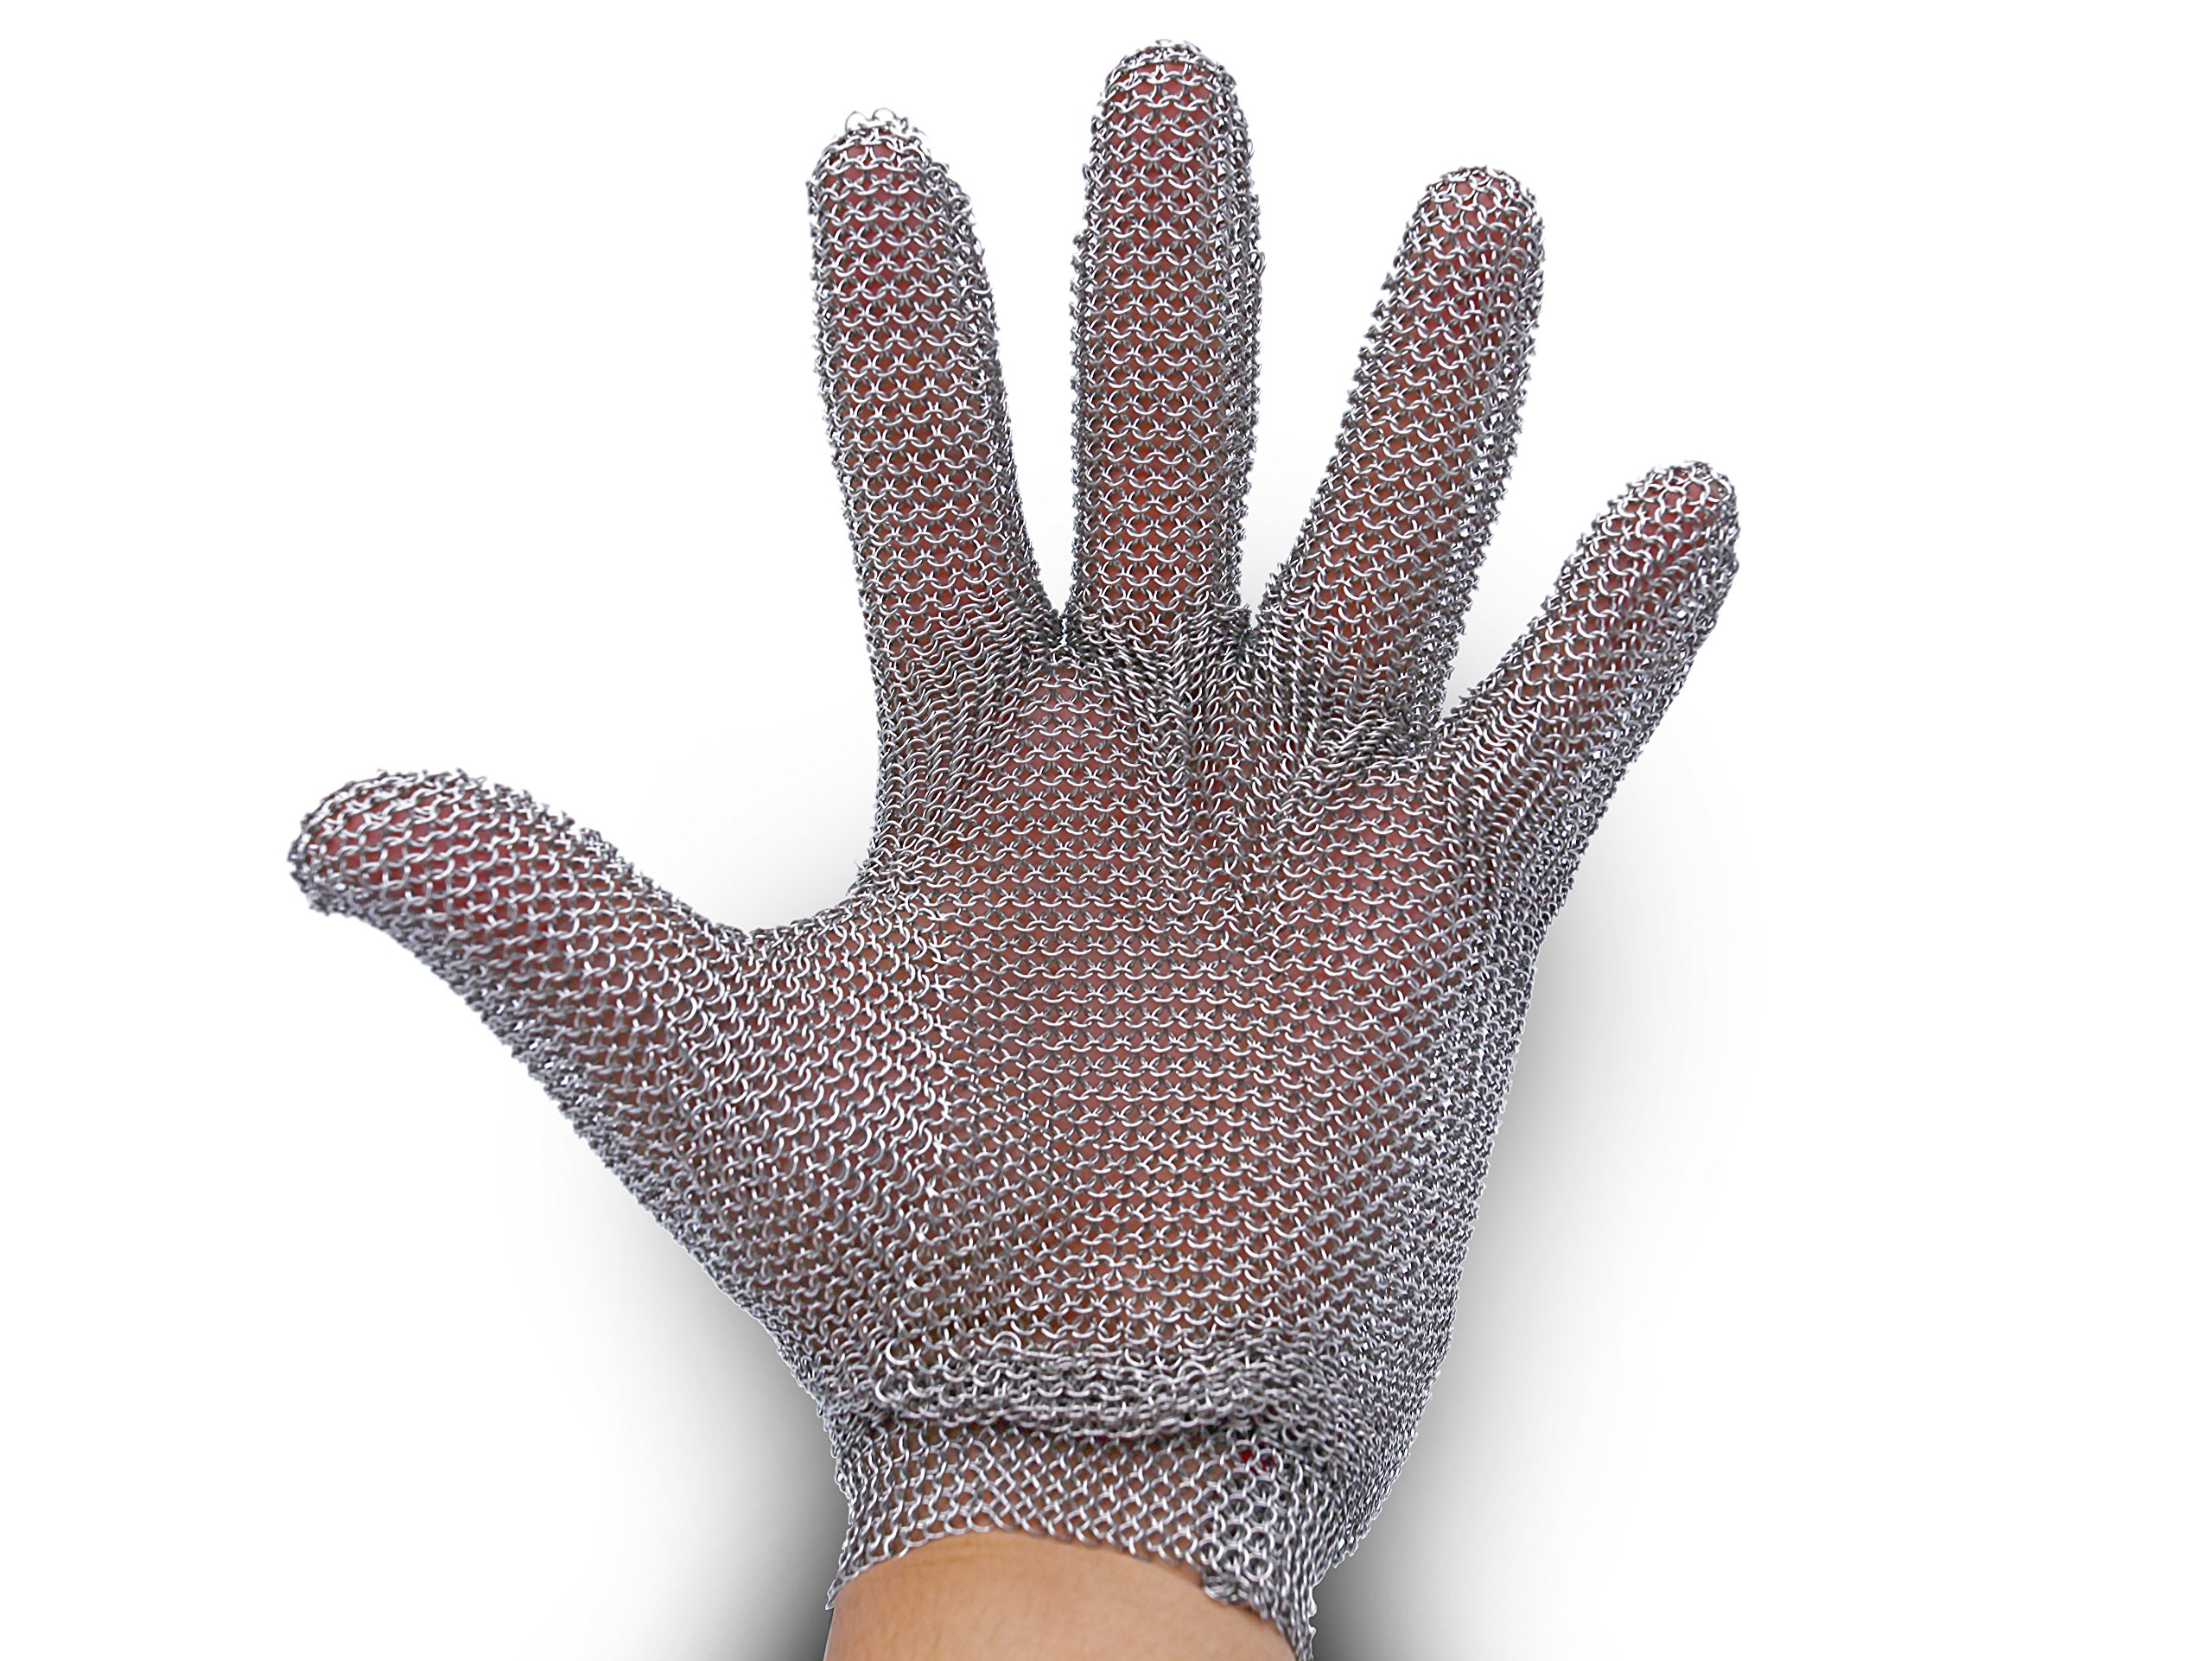 All Stainless Steel, No Fabric - Chainmail Mesh Butcher Glove - Sizes XXS to XL Available - ISO, FDA Compliant by 44Industry (Image #3)